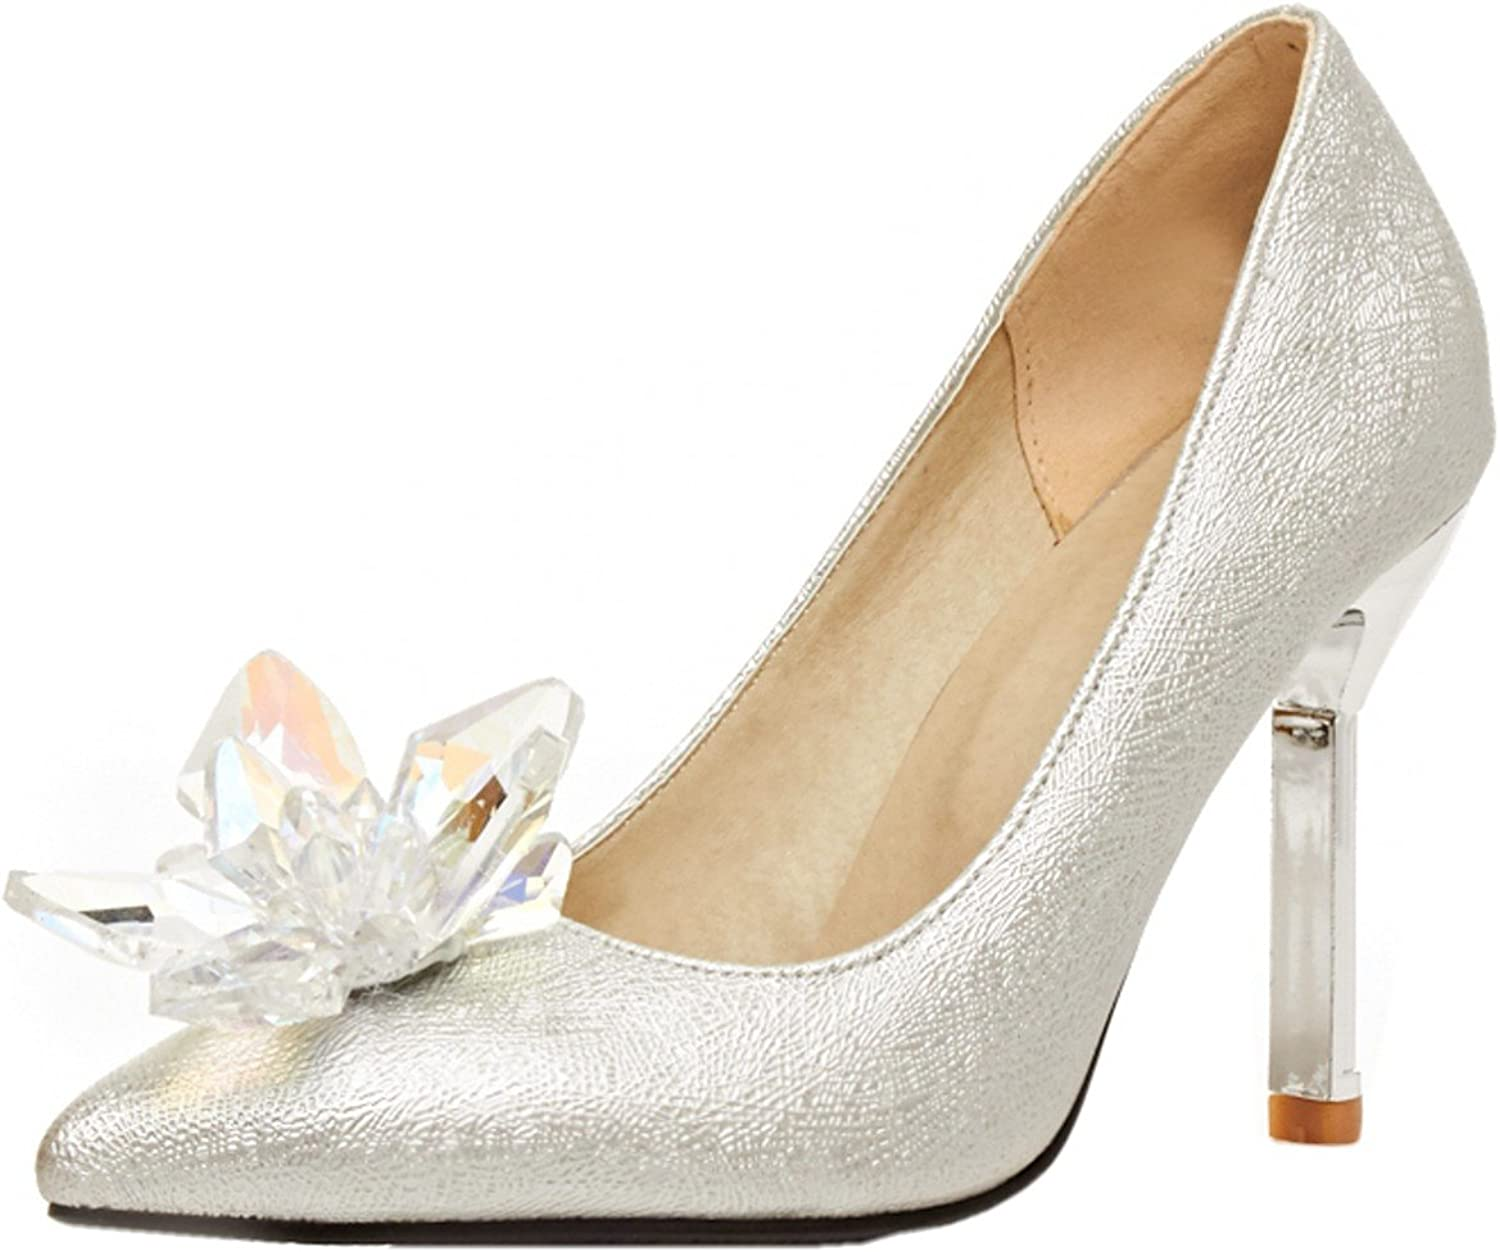 Lansdear Elegant New Silver Bridal shoes Dripping Wedding shoes High Heel Single shoes